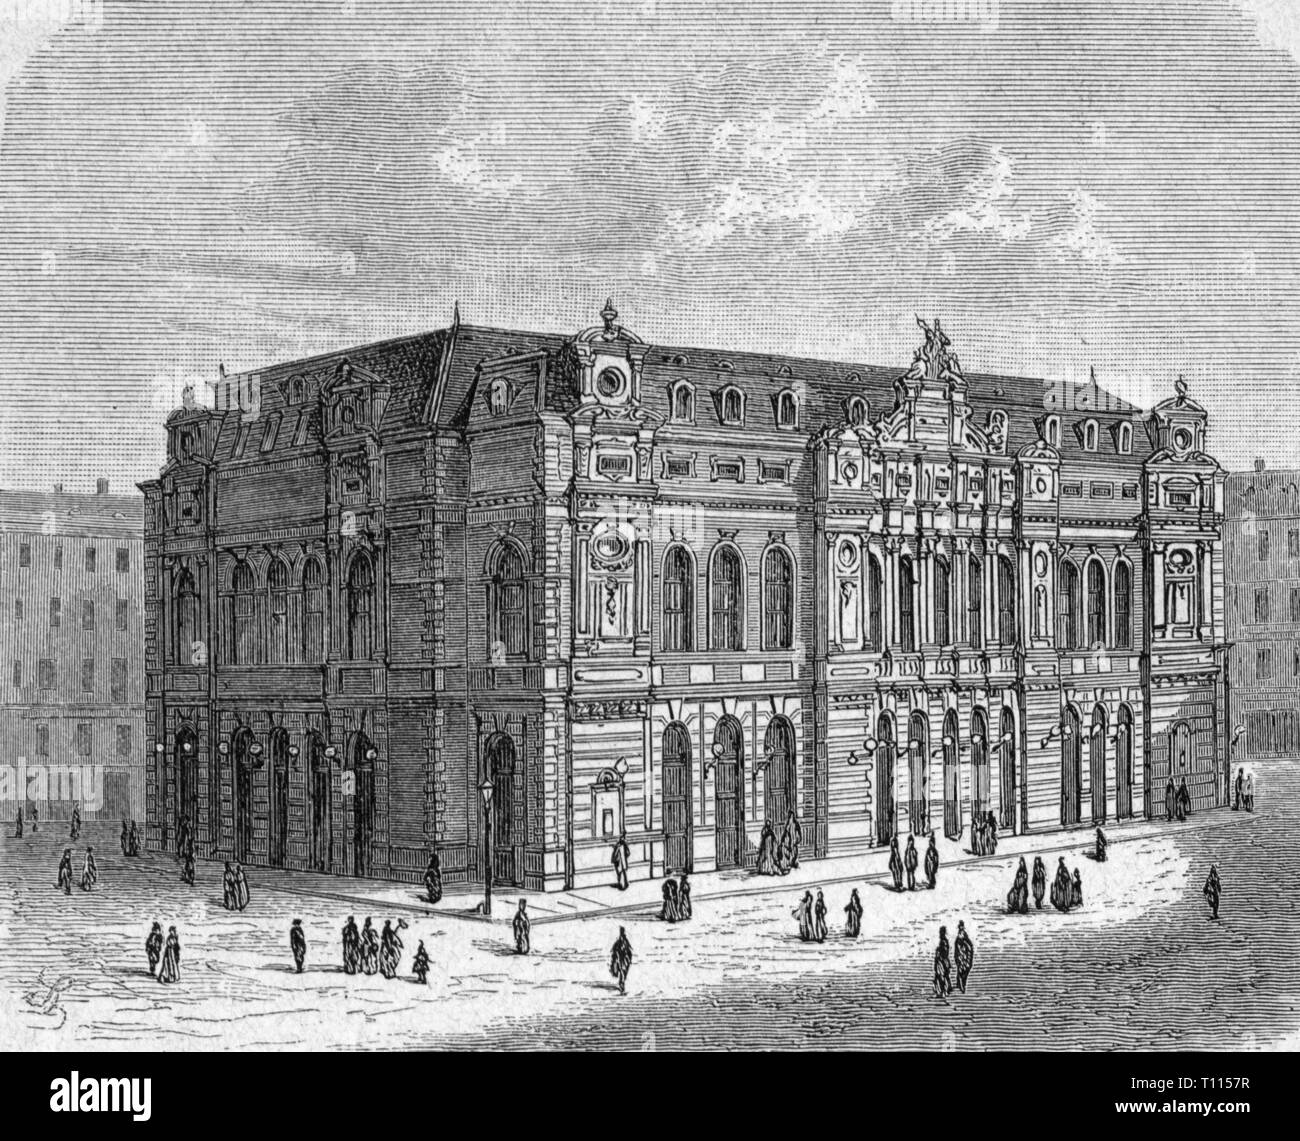 geography / travel historic, Germany, cities and communities, Cologne, theatre / theater, municipal theatre at the Glockengasse, built 1870 - 1872, architect: Julius Carl Raschdorff, exterior view, wood engraving, circa 1880, city, playhouse, playhouses, culture, cultures, building, buildings, street, streets, people, Kingdom of Prussia, Rhine Province, Rhineland, German Empire, Imperial Era, Europe, 19th century, community, communities, theatre / theater, theaters, municipal theatre, municipal theatres, architect, architects, historic, historical, Artist's Copyright has not to be cleared - Stock Image